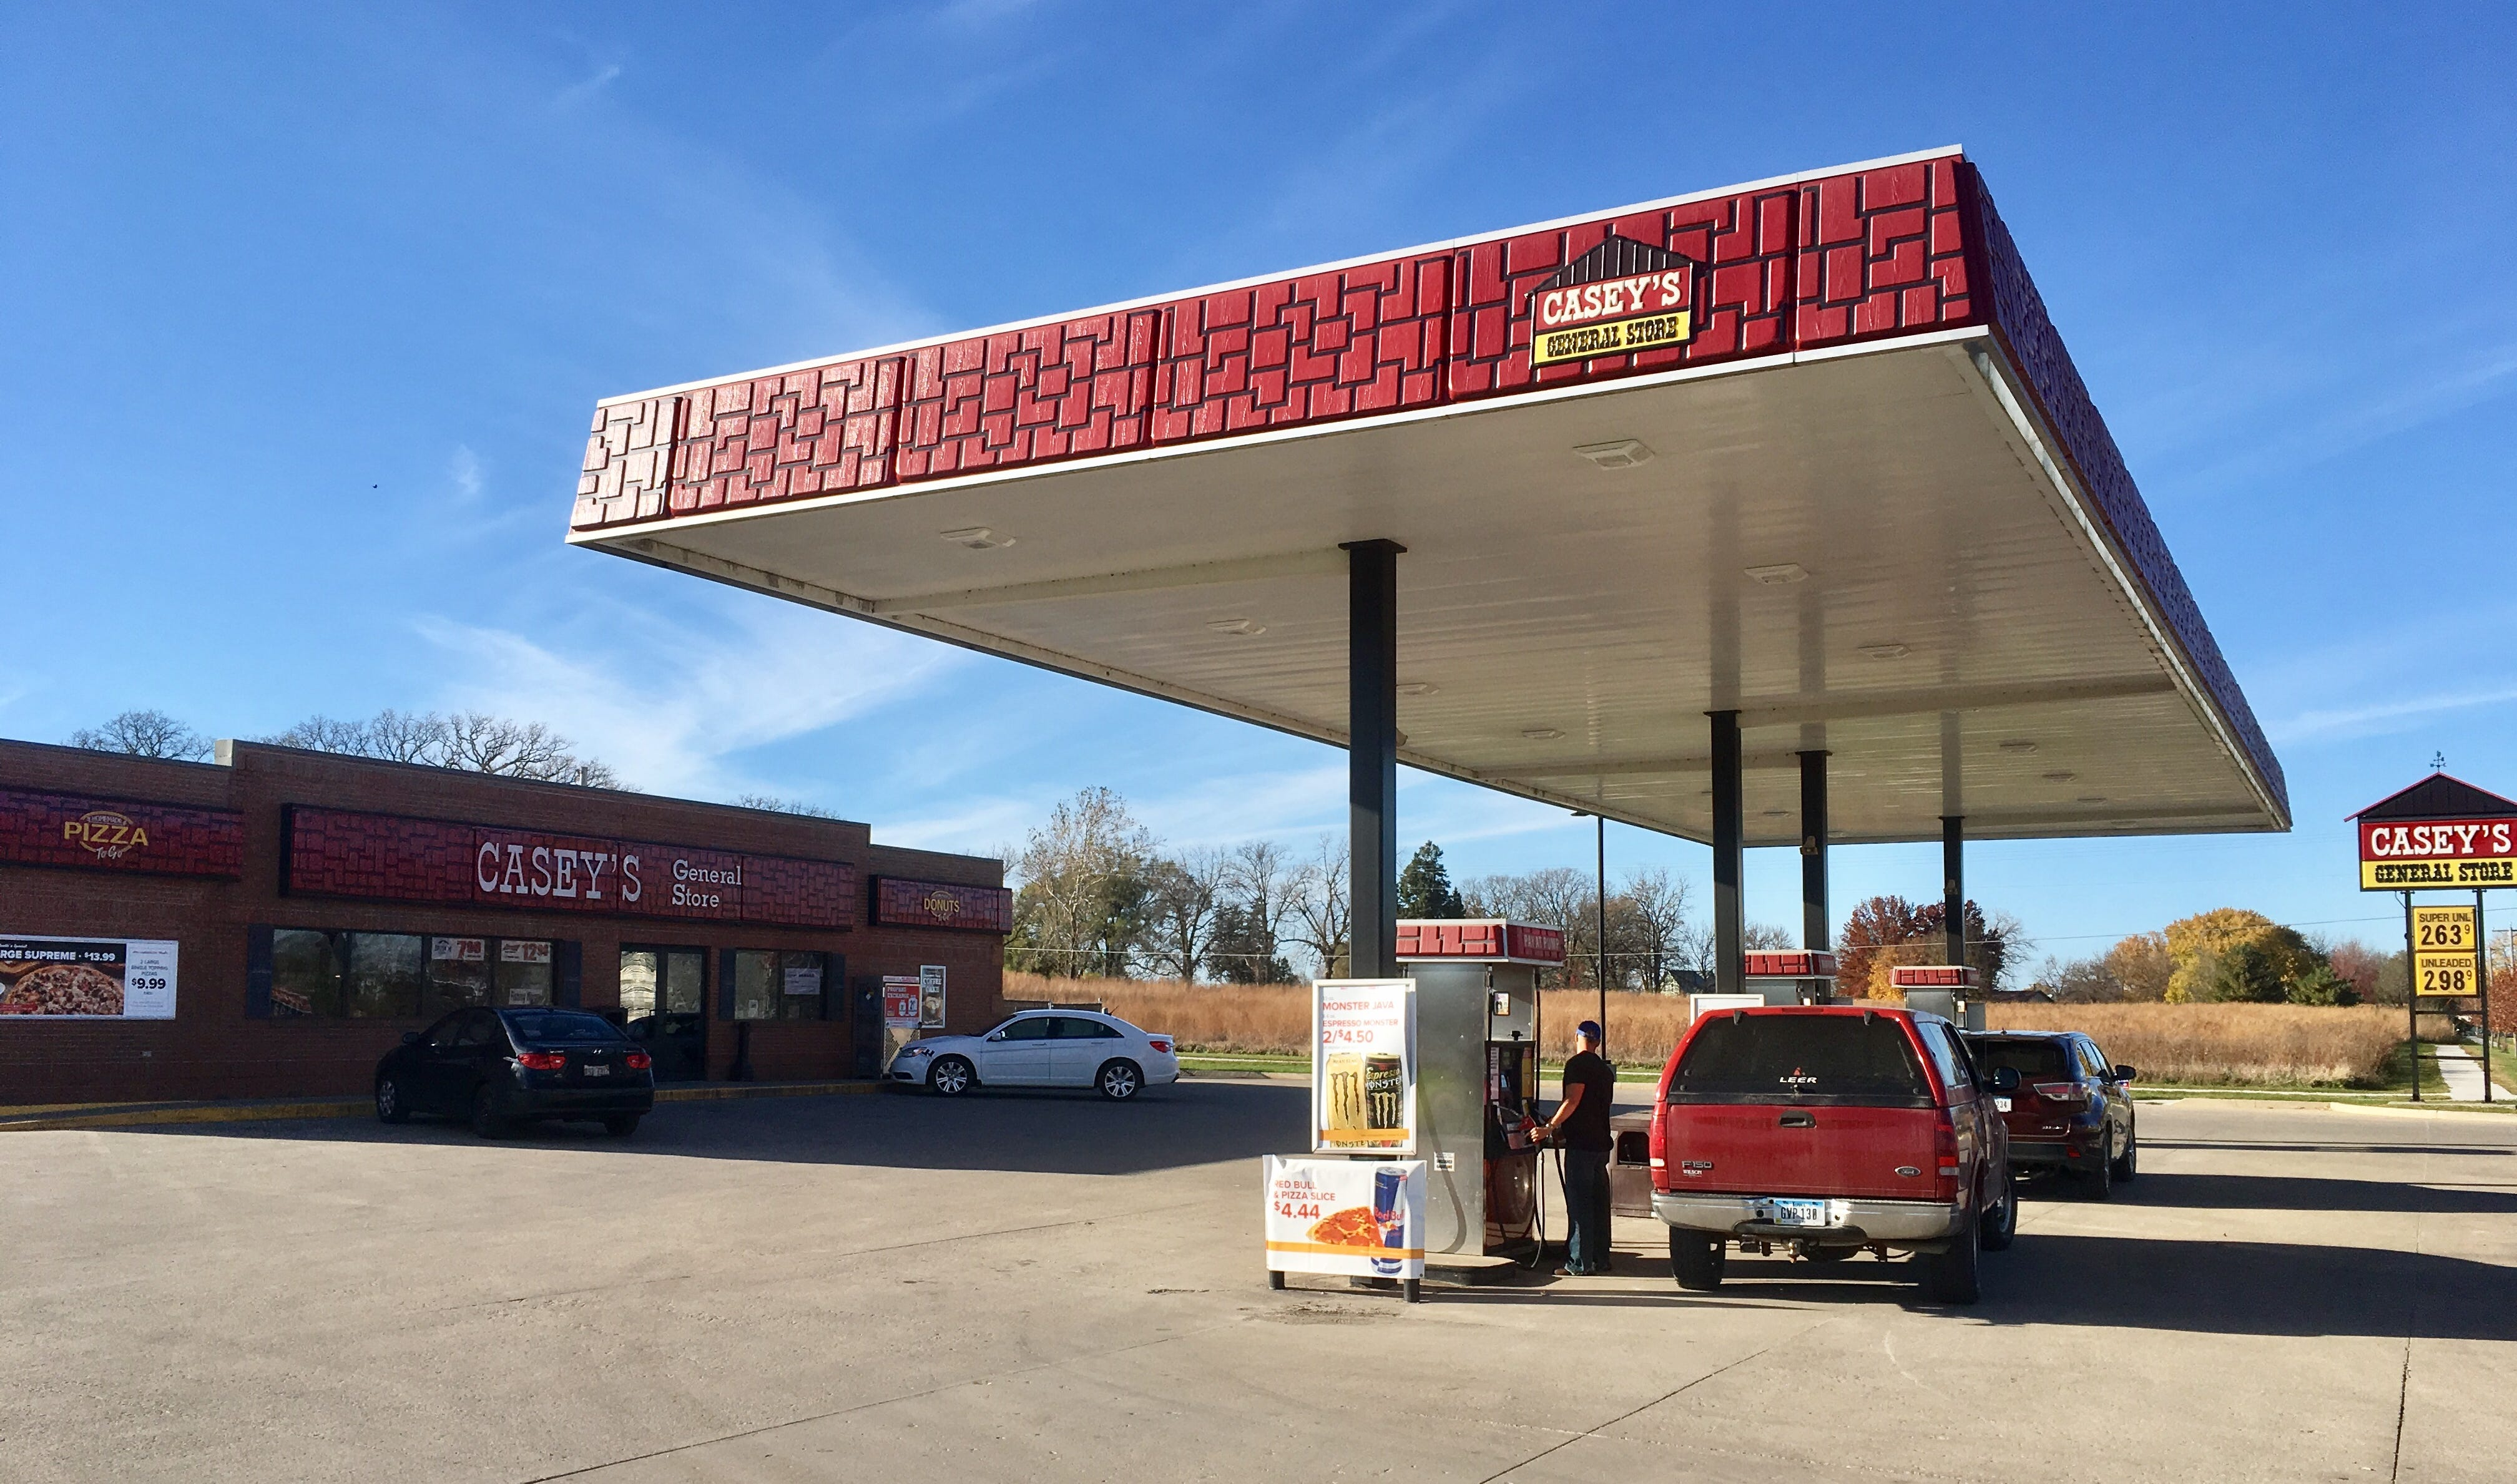 The Casey's convenience store in Redfield, Iowa, where one of the winning tickets was sold.